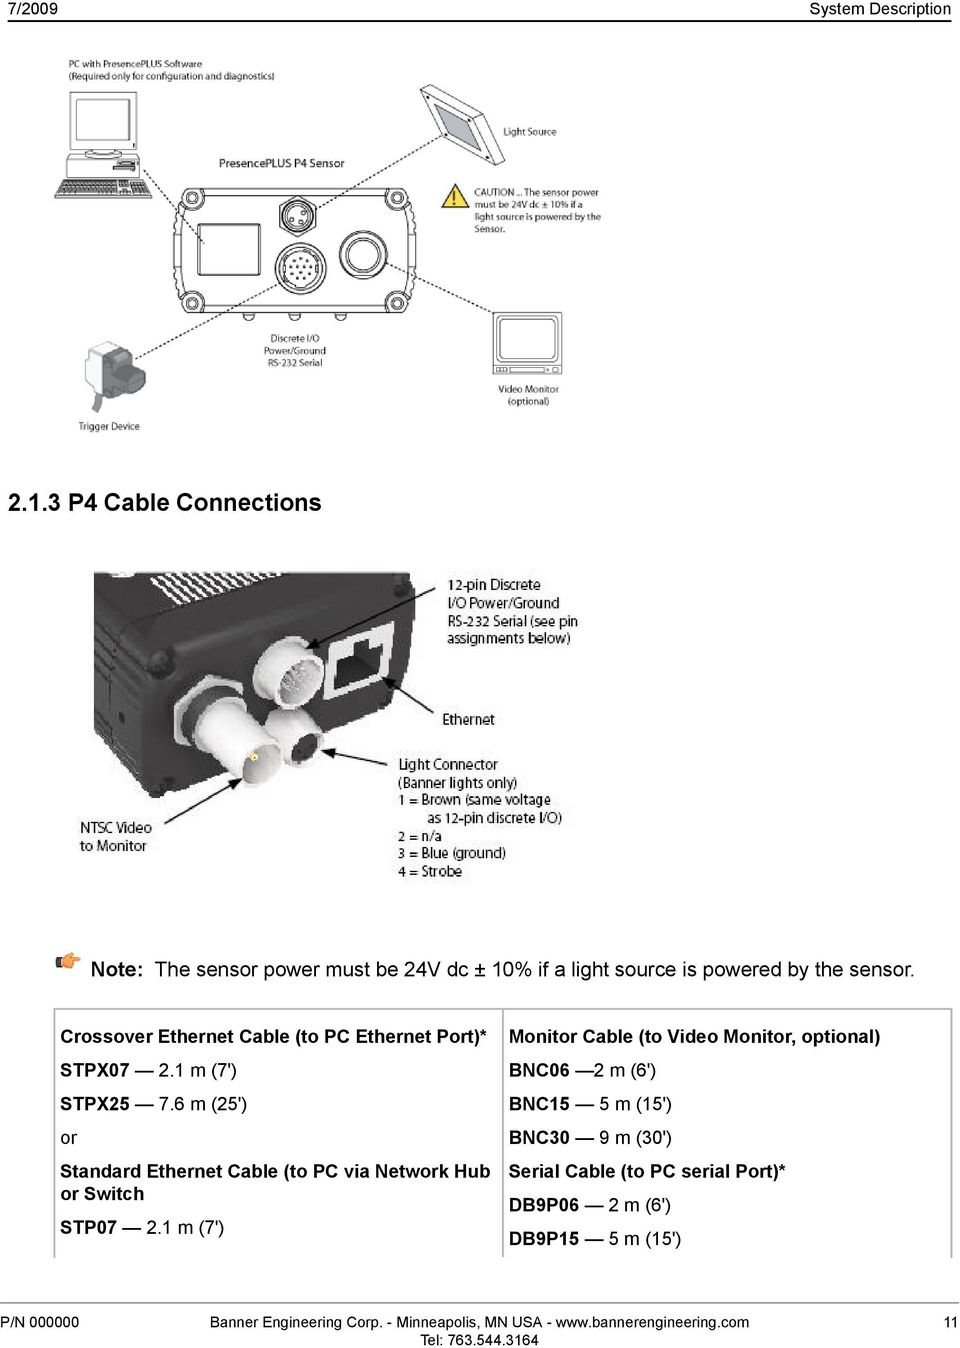 Crossover Ethernet Cable (to PC Ethernet Port)* STPX07 2.1 m (7') STPX25 7.